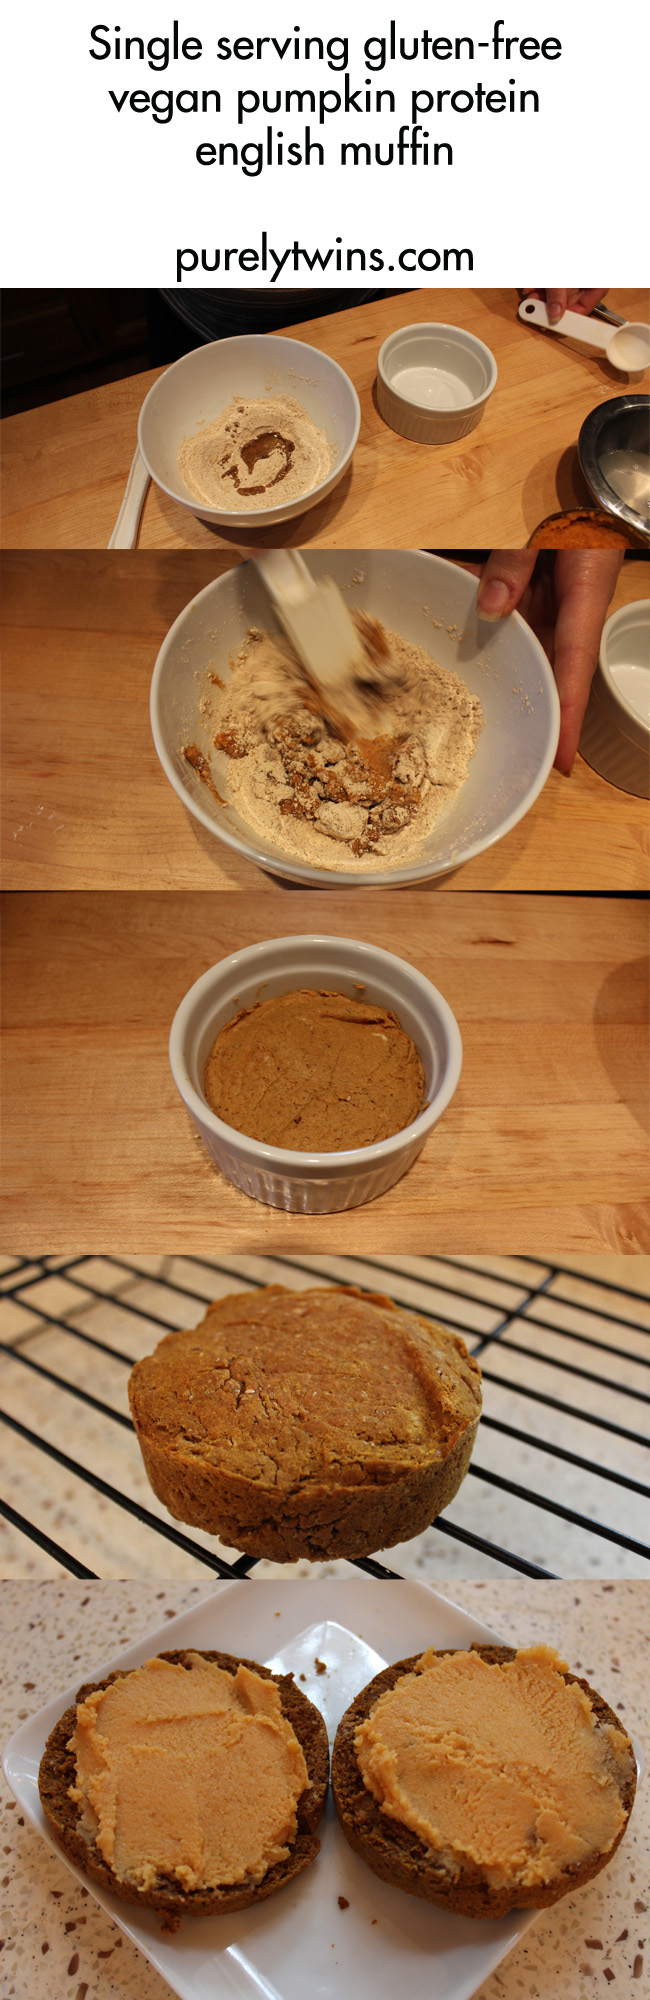 how-to-make-pumpkin-protein-english-muffin-for-one